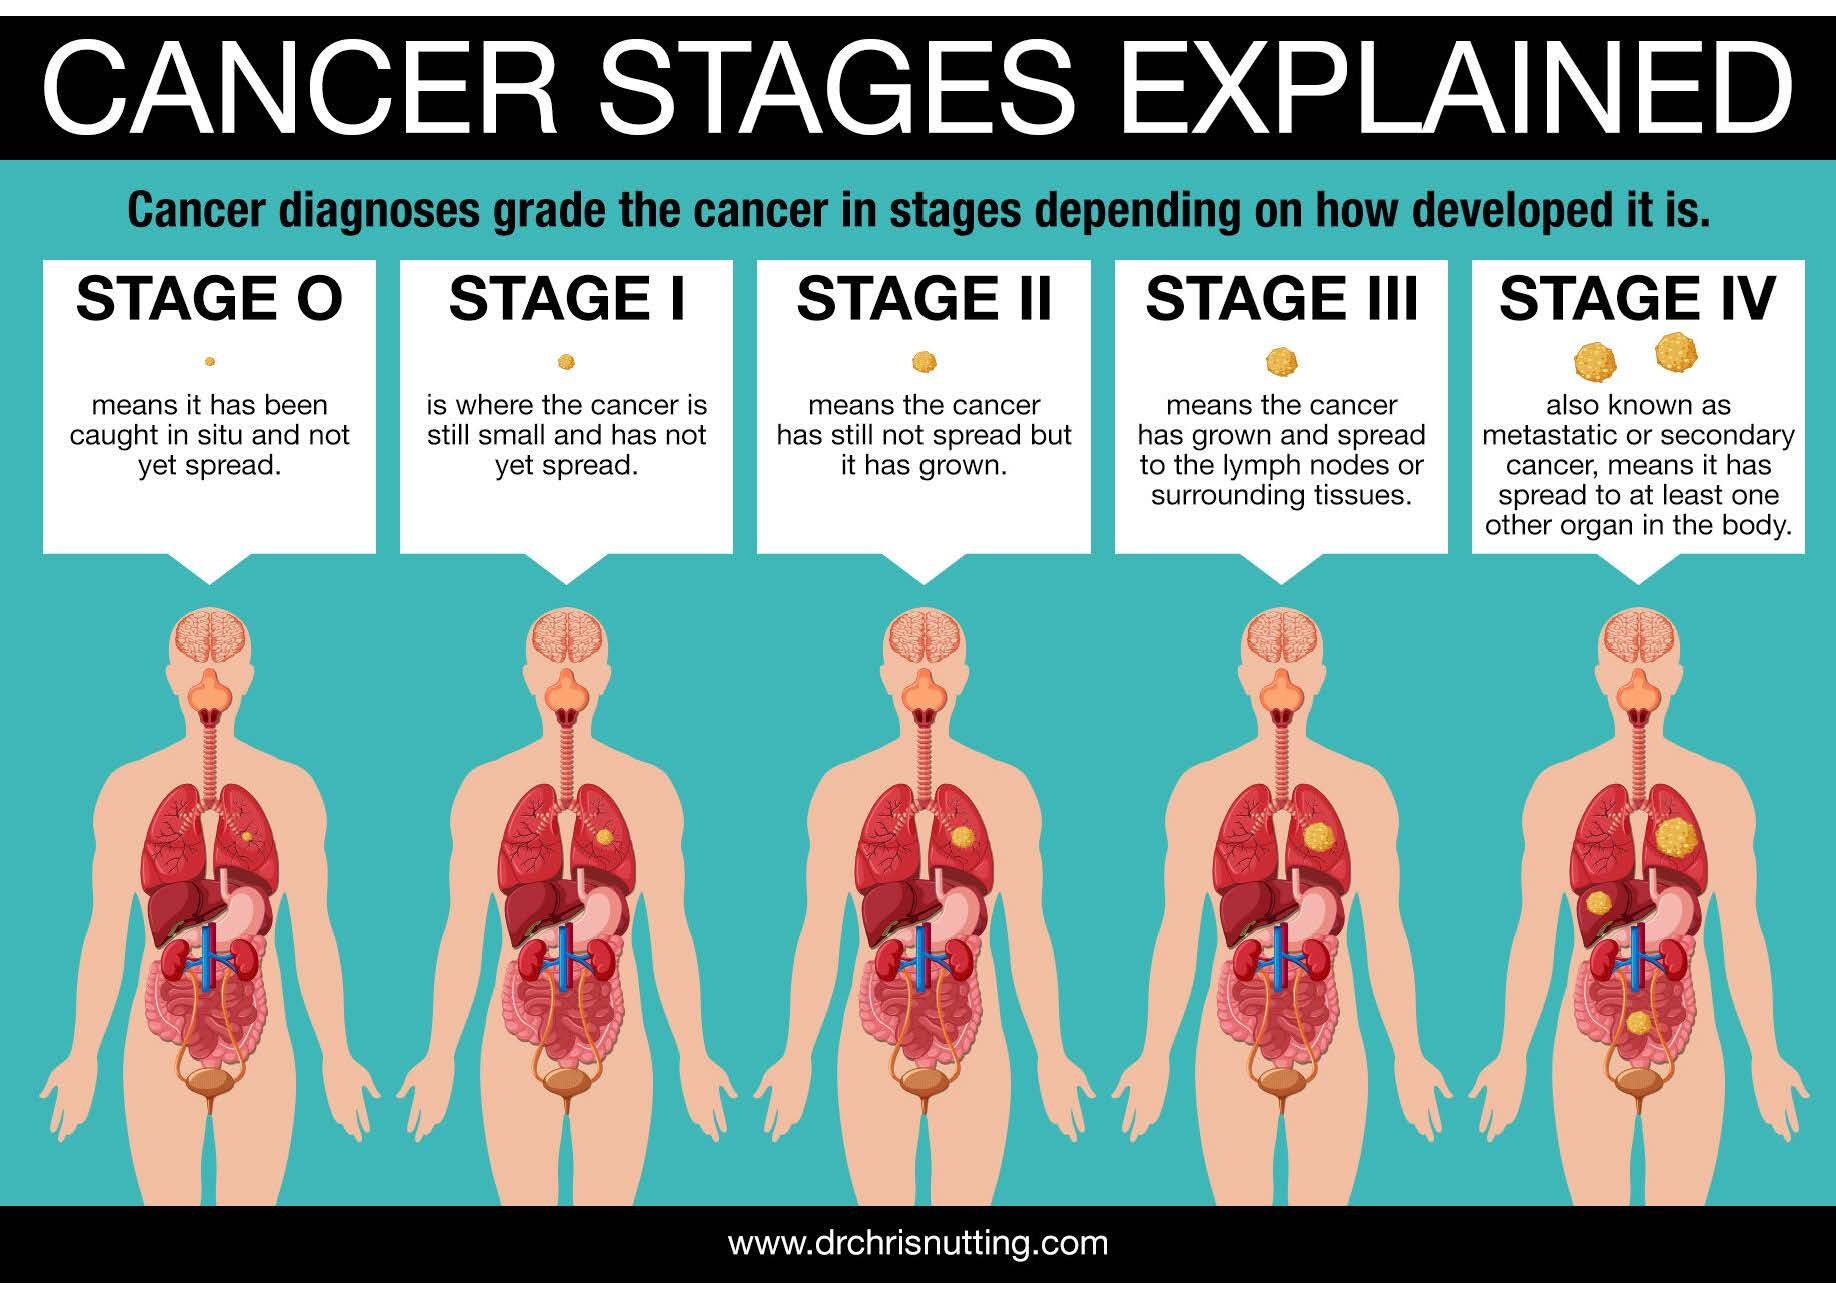 cancerstages